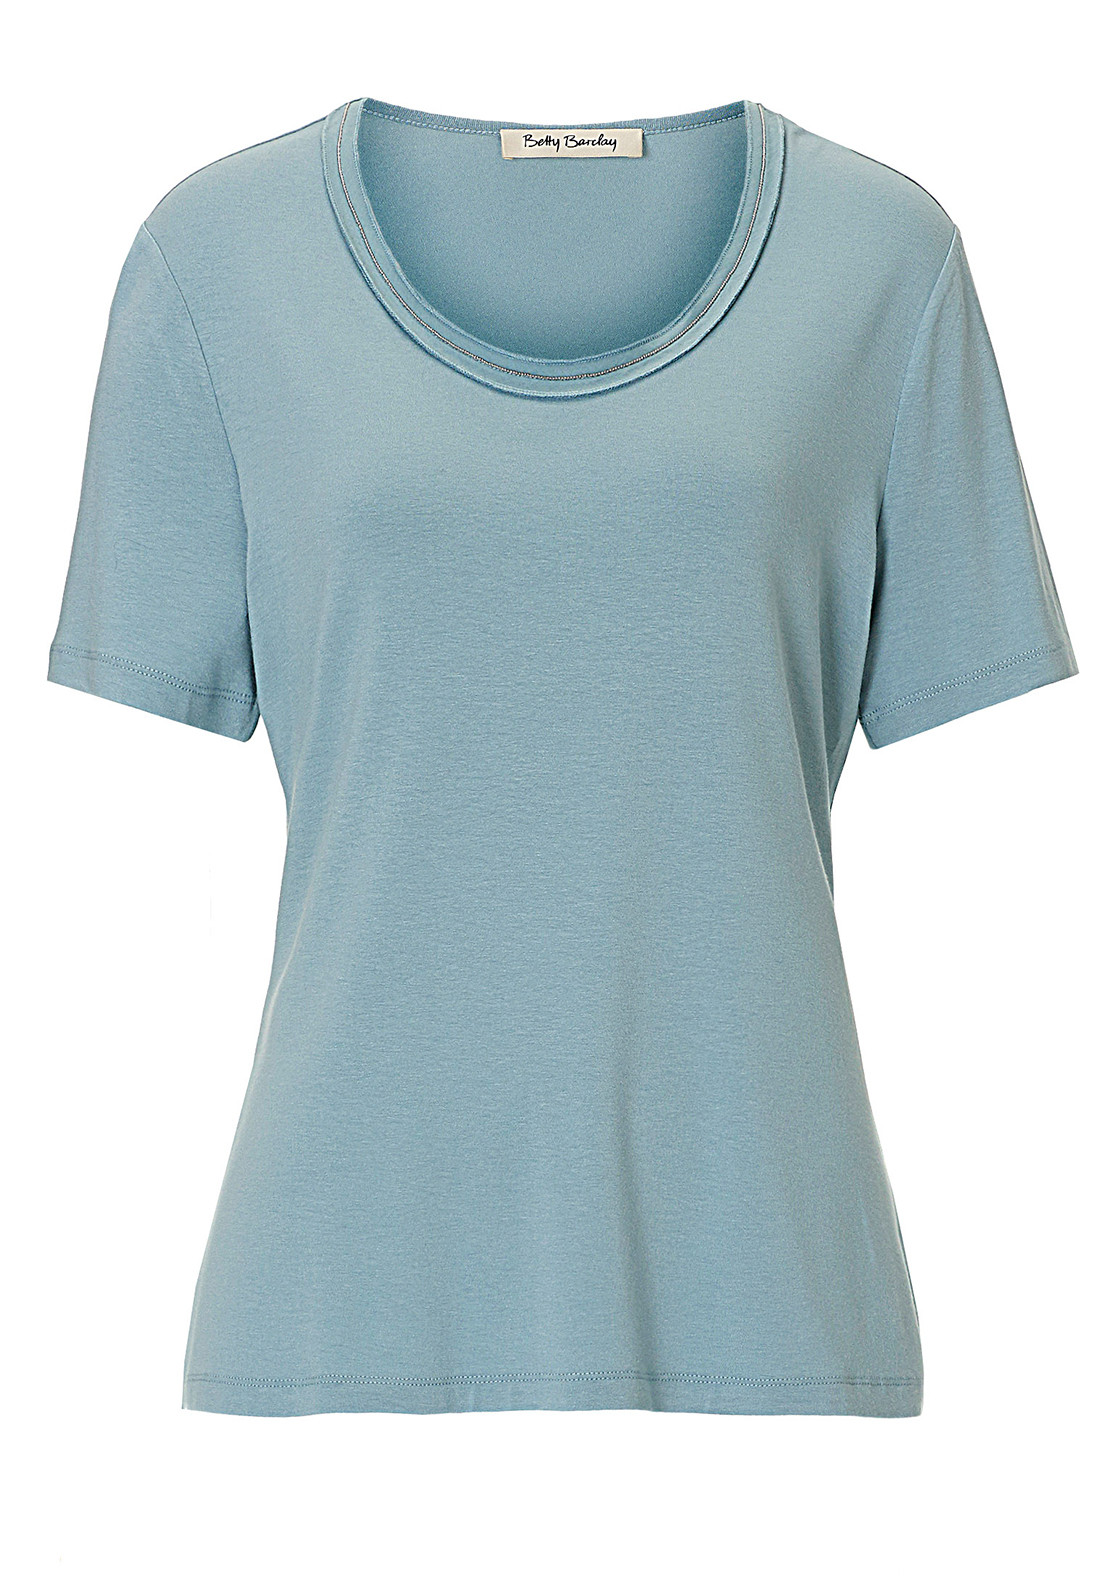 Betty Barclay Stud Trim Short Sleeve T-Shirt, Pale Blue